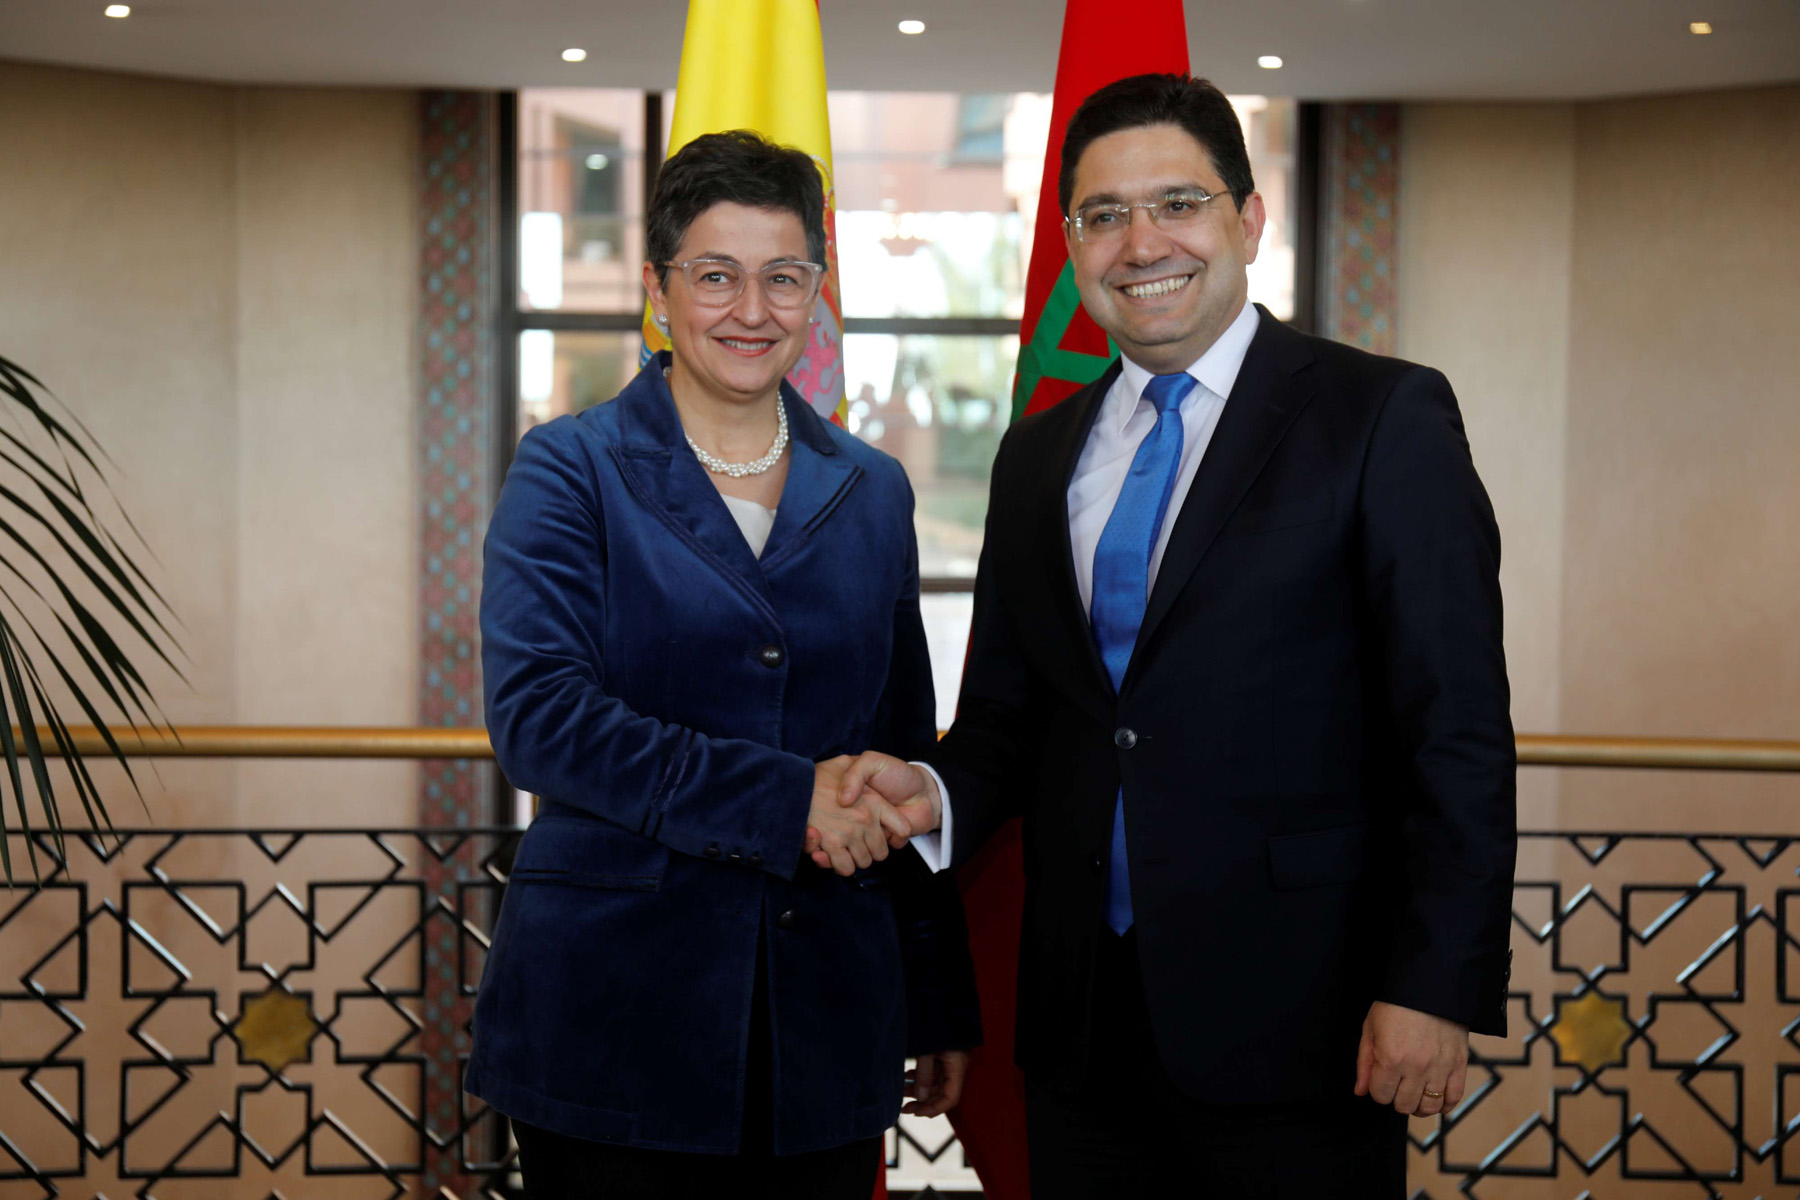 Moroccan Foreign Minister Nasser Bourita meets with Spanish counterpart Arancha Gonzalez Laya in Rabat, last January. (REUTERS)